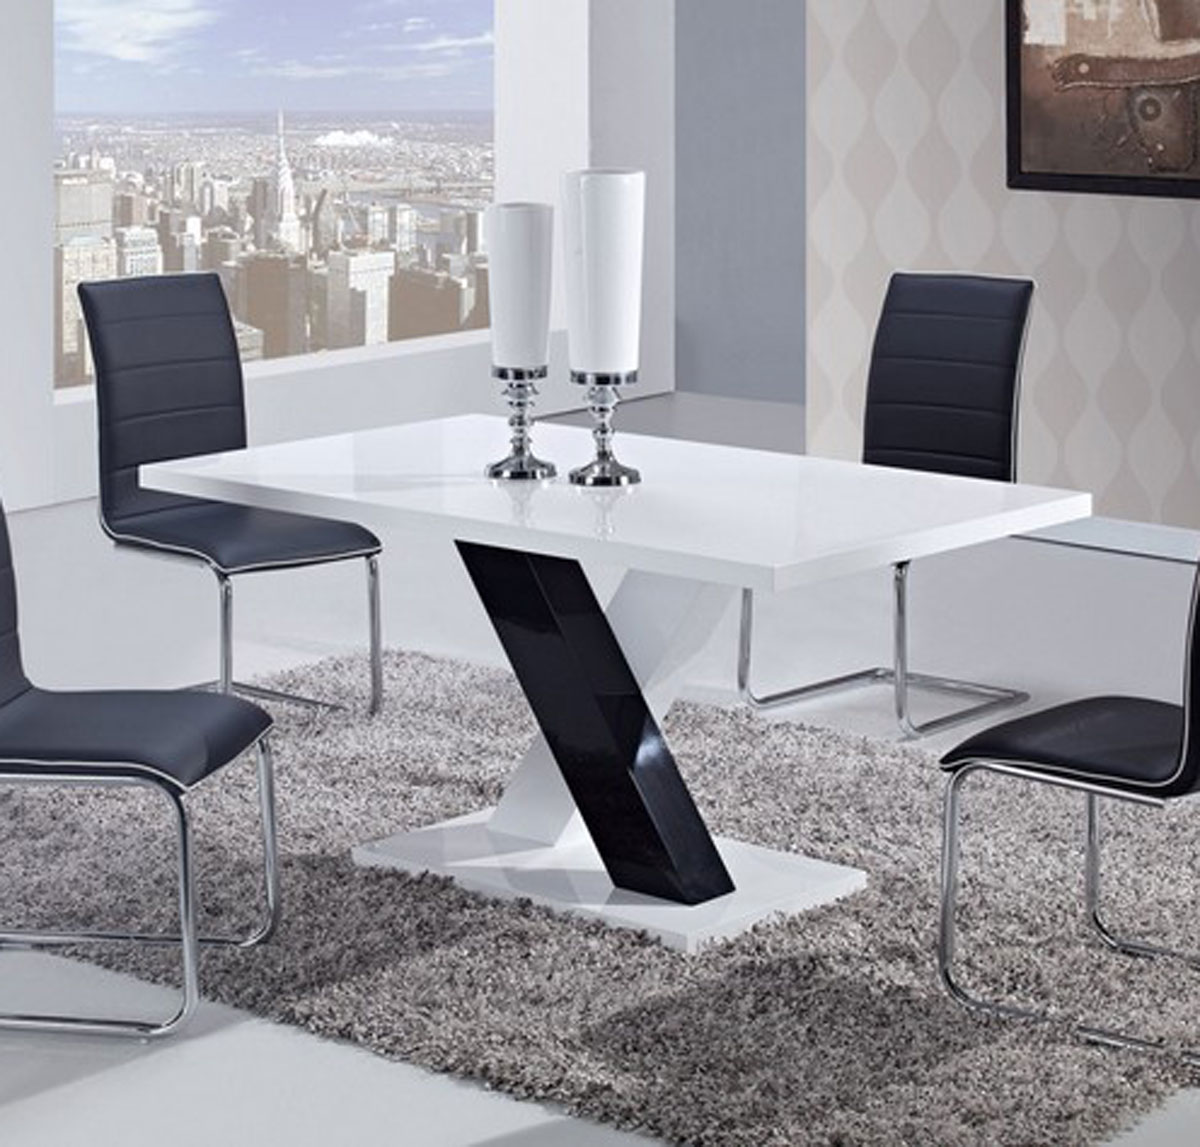 Bon Global Furniture USA 490 Dining Table  White High Gloss MDF   Black And  White Legs